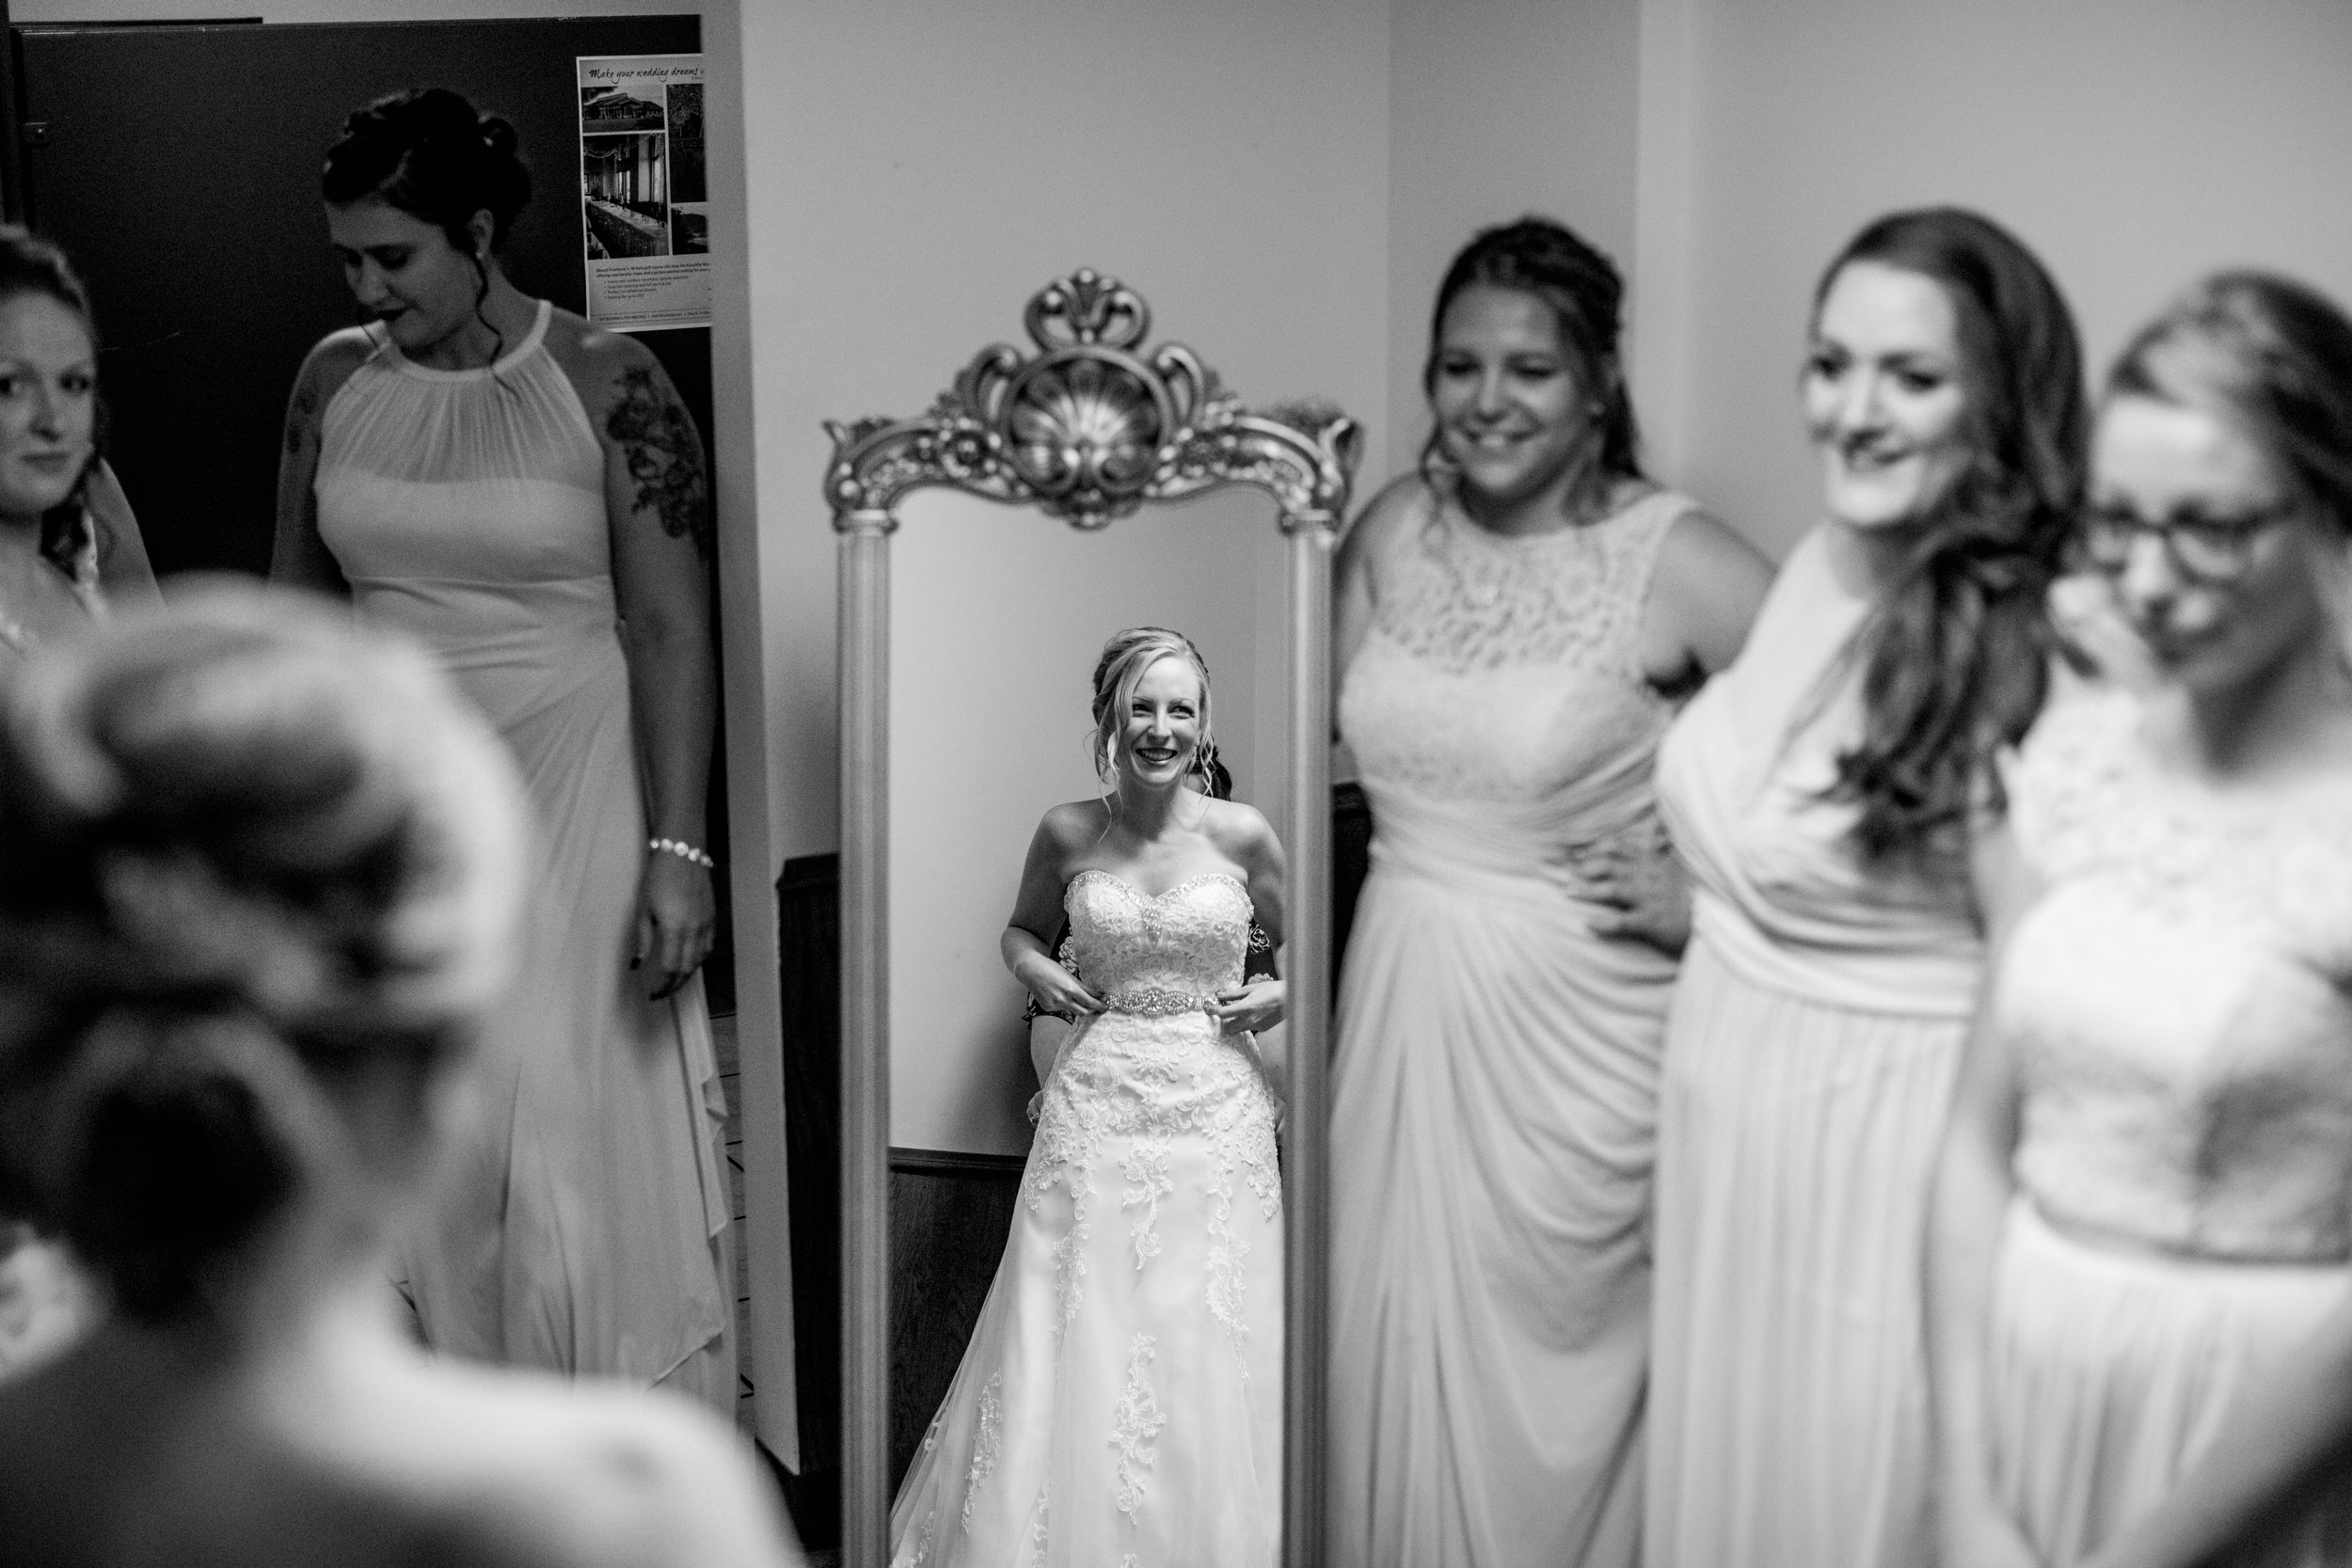 Bridal Portrait: Bridesmaids First Look - Hove Photography LLC - Destination Wedding Photographer